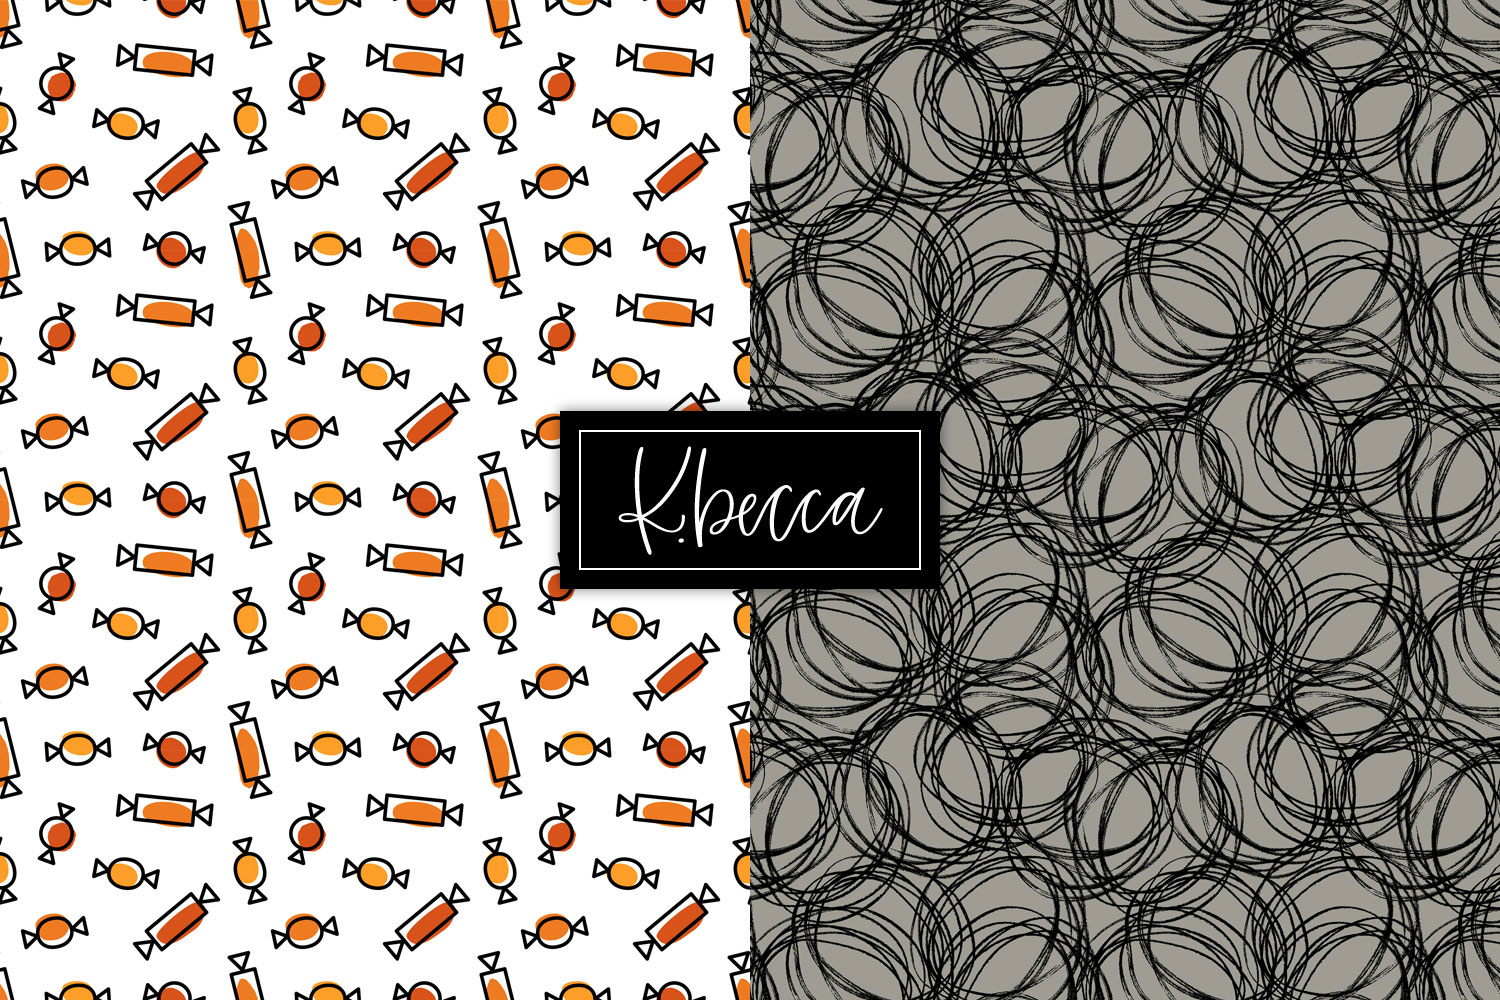 Spooky Halloween Background Patterns Seamless example image 5